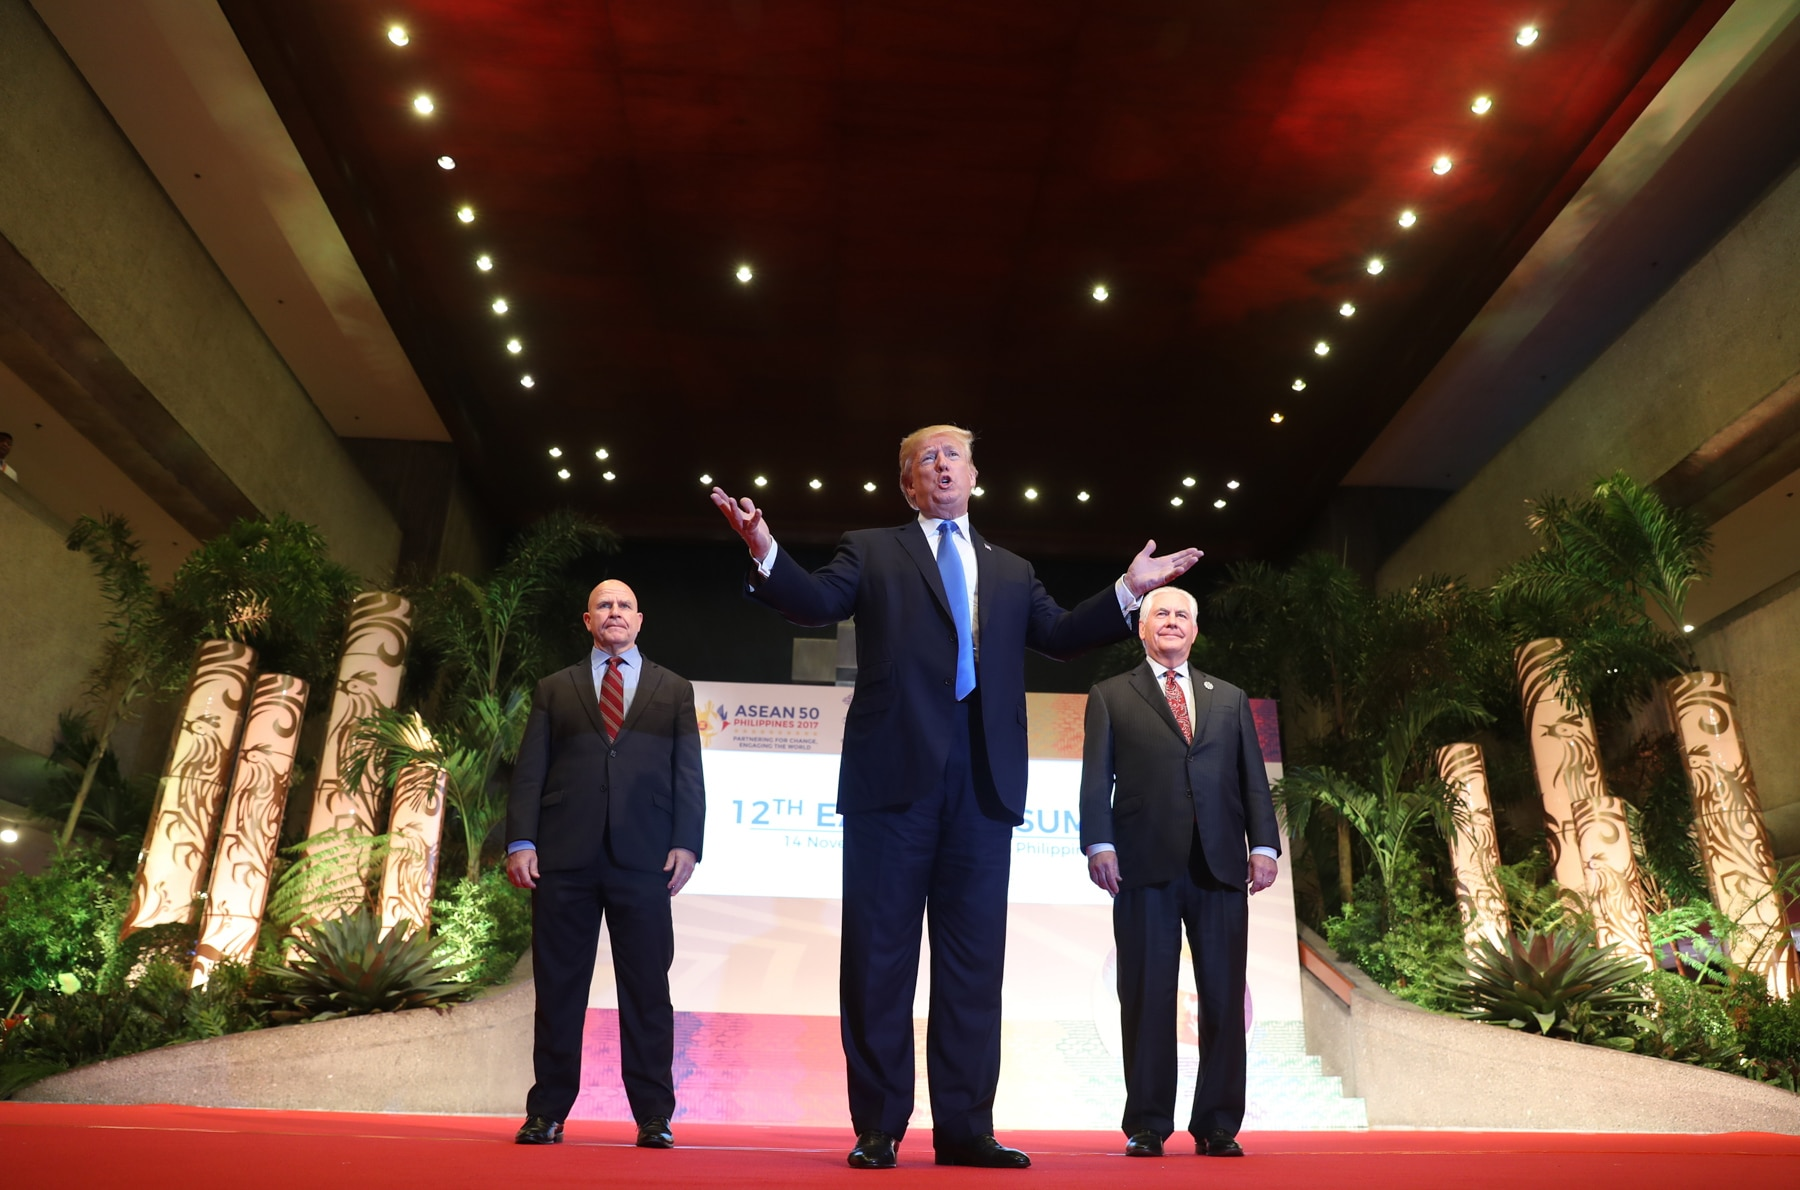 Three men standing on a stage (© AP Images)